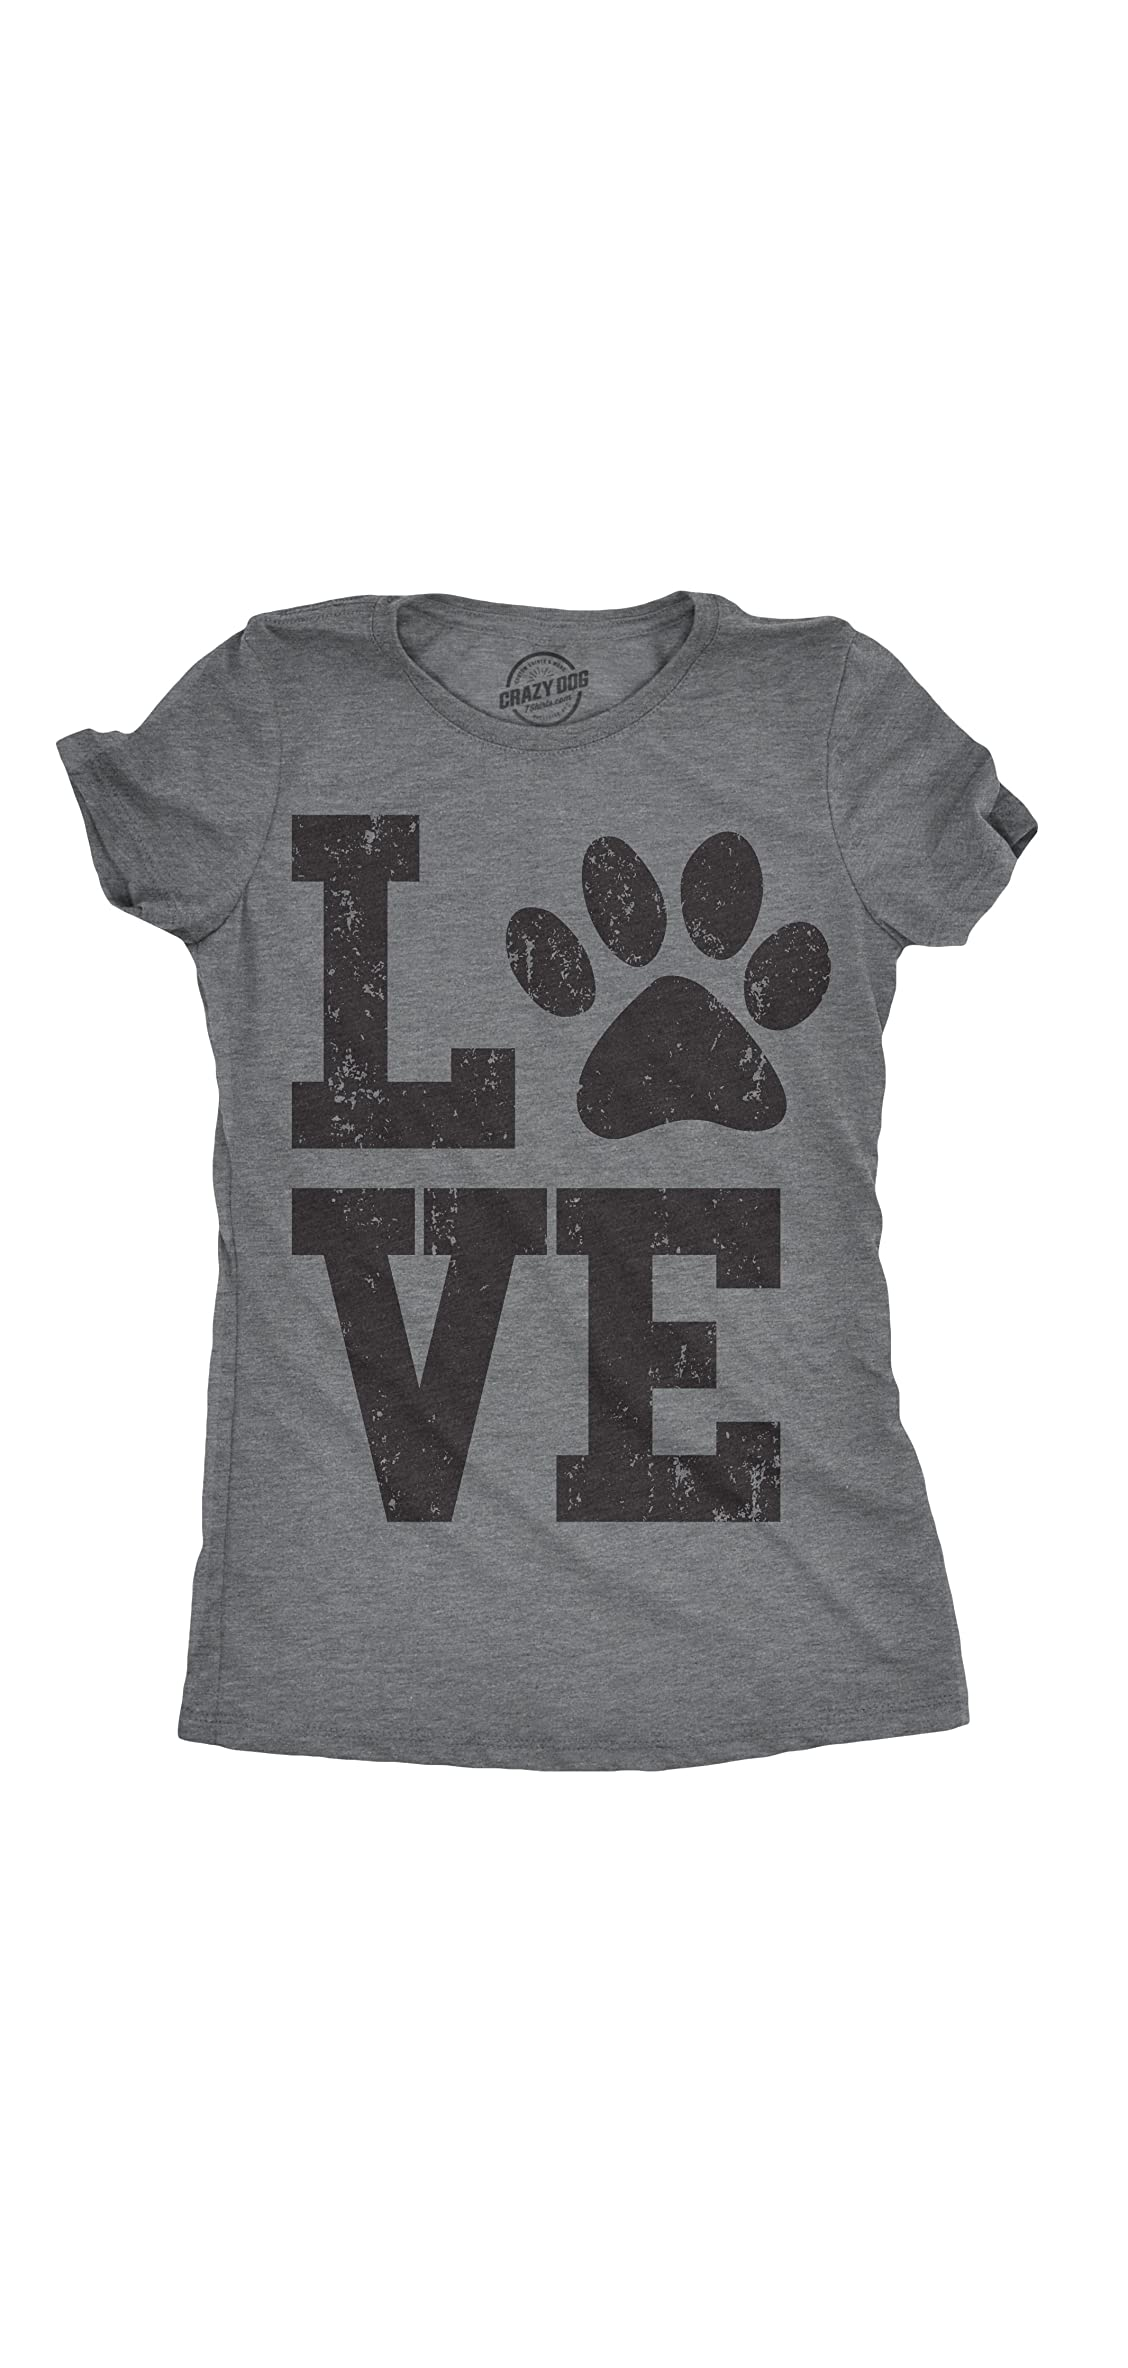 Womens Love Paw T Shirt For Dog Mom Pet Lover Cool Funny Graphic